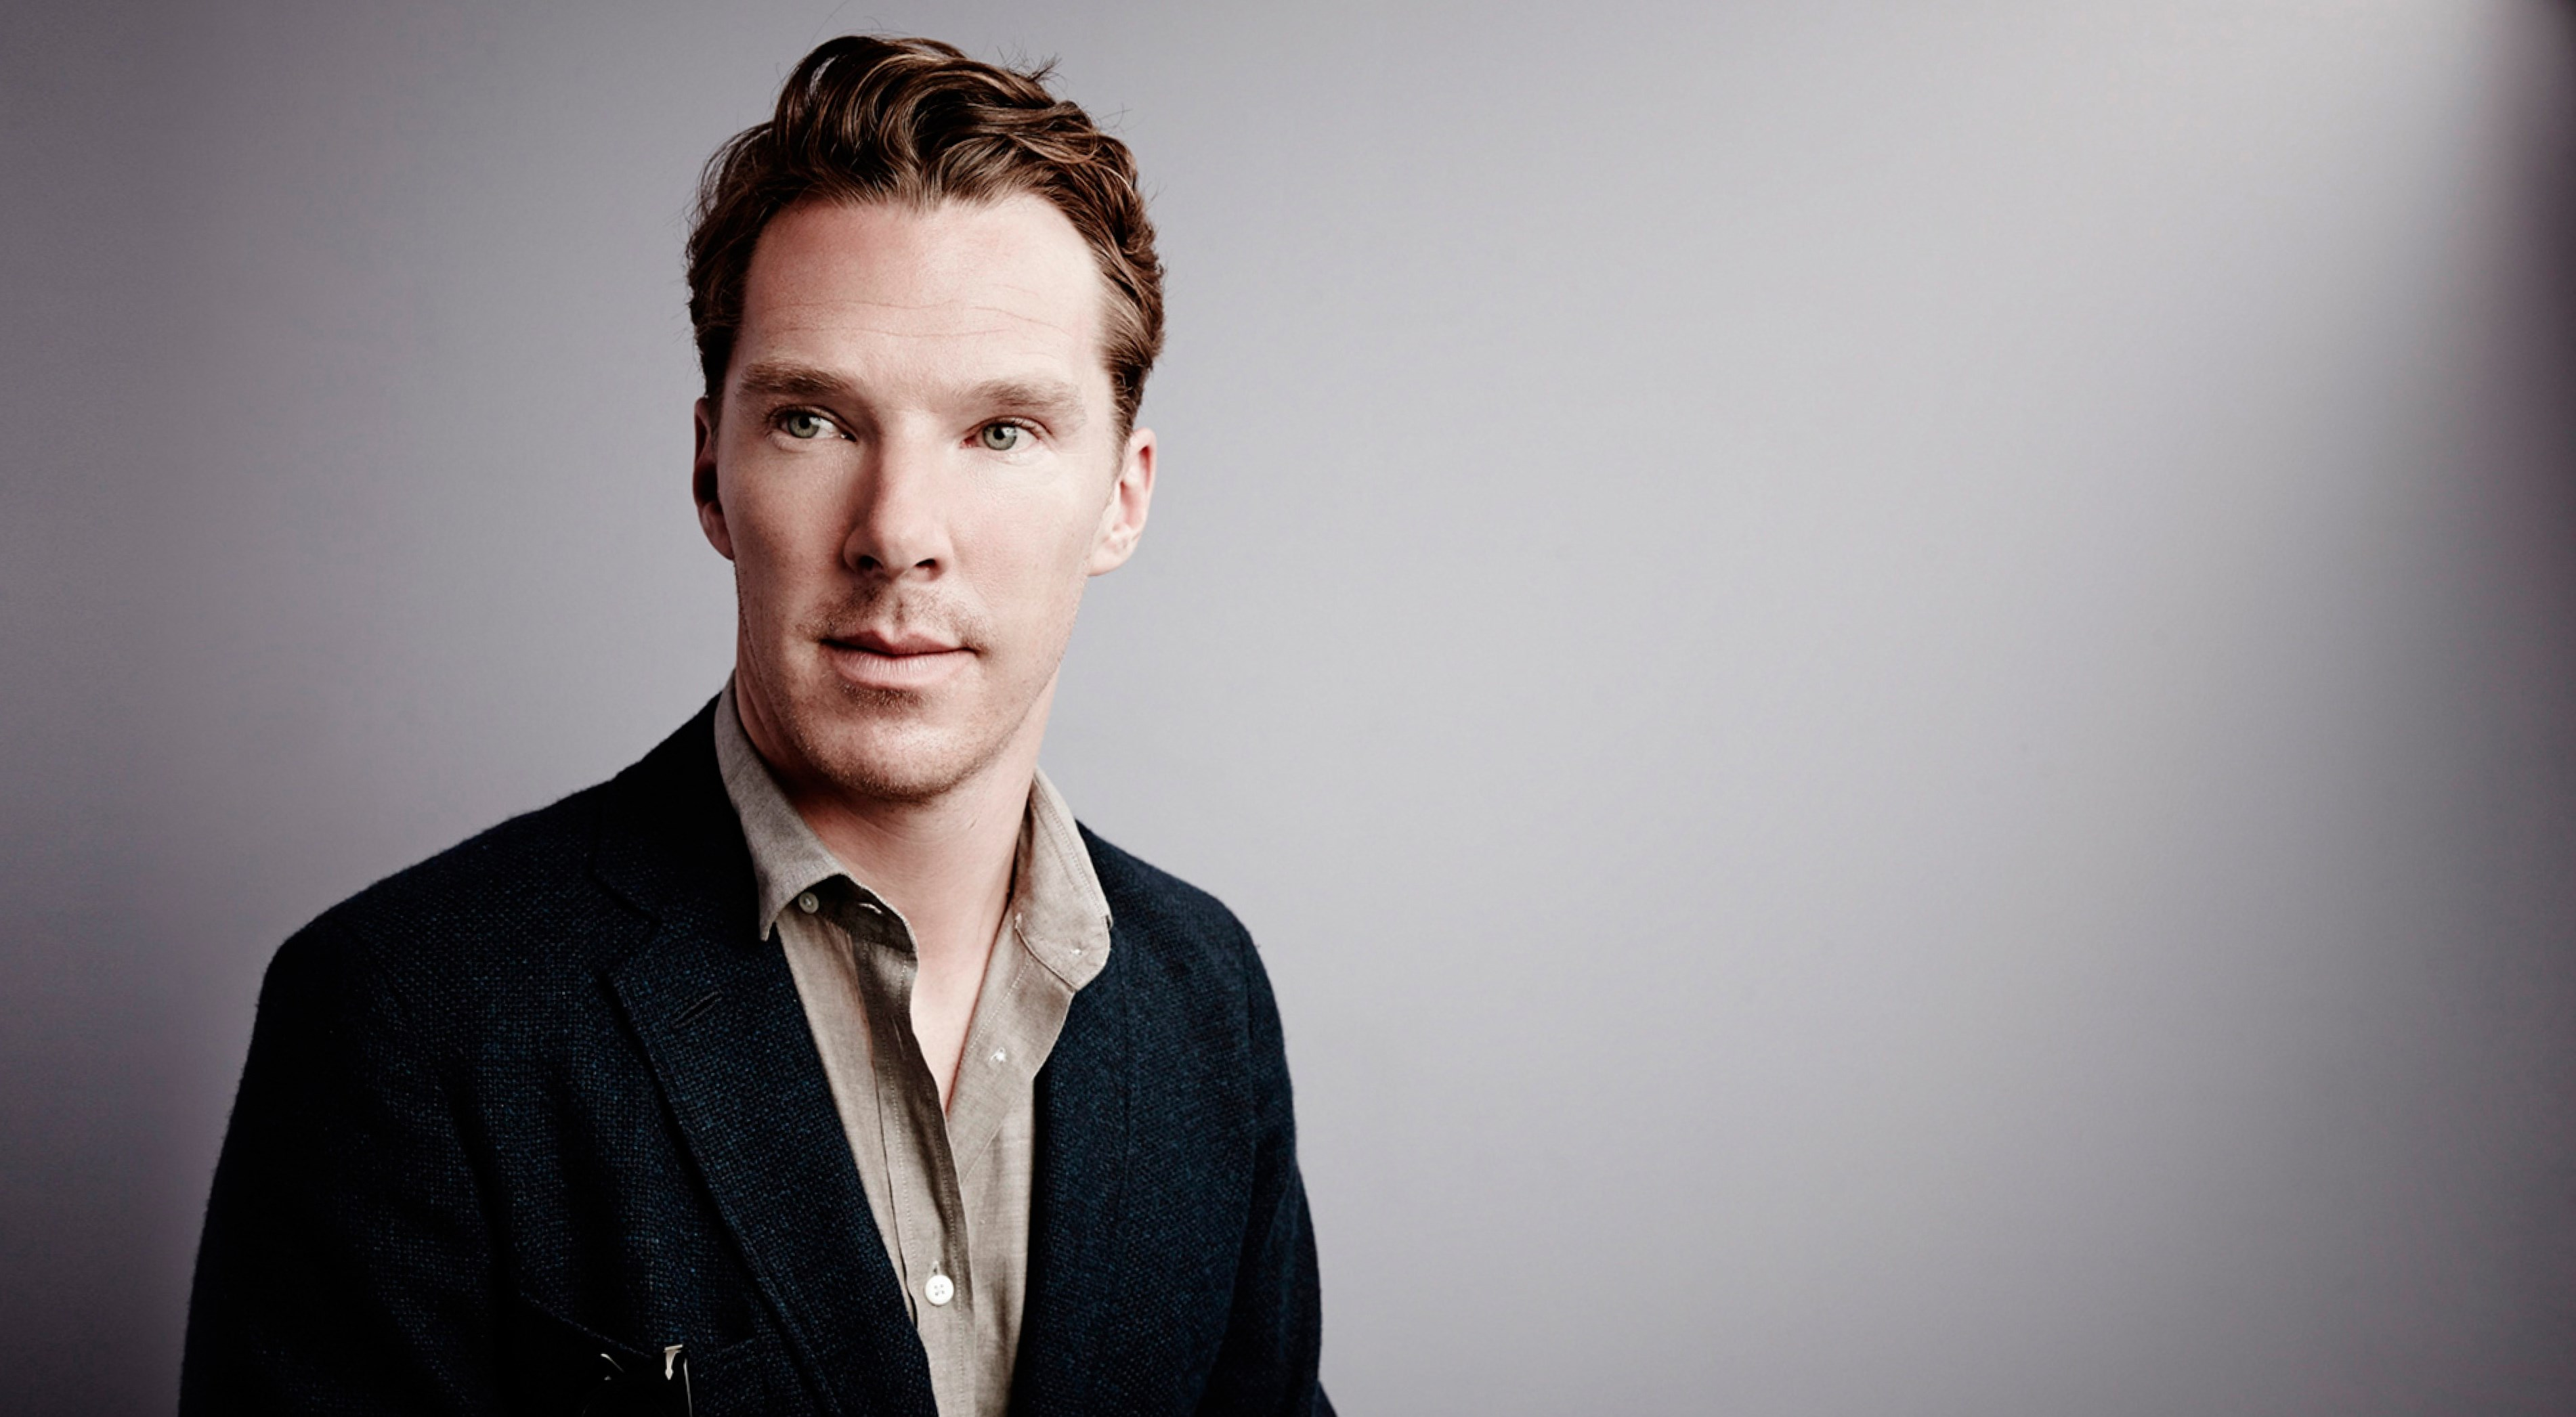 Benedict Cumberbatch Height Weight Age And Body Measurements